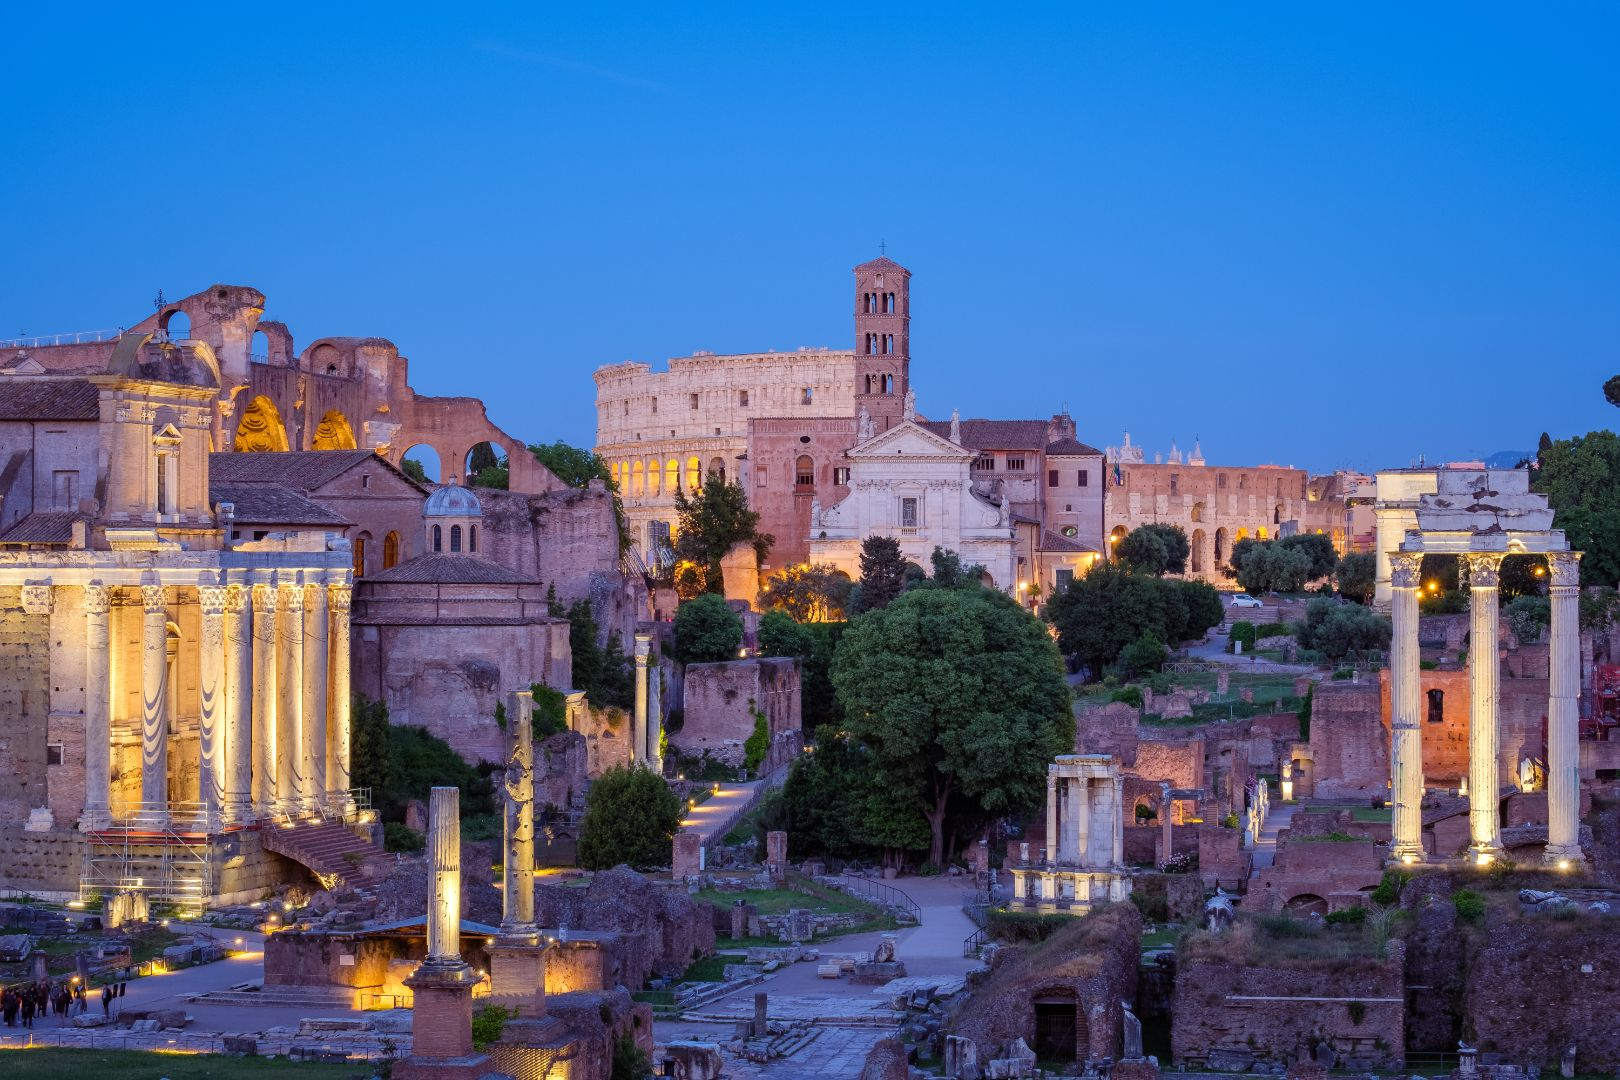 forum-romanum-and-colosseum-in-rome-after-sunset-P46PKDK